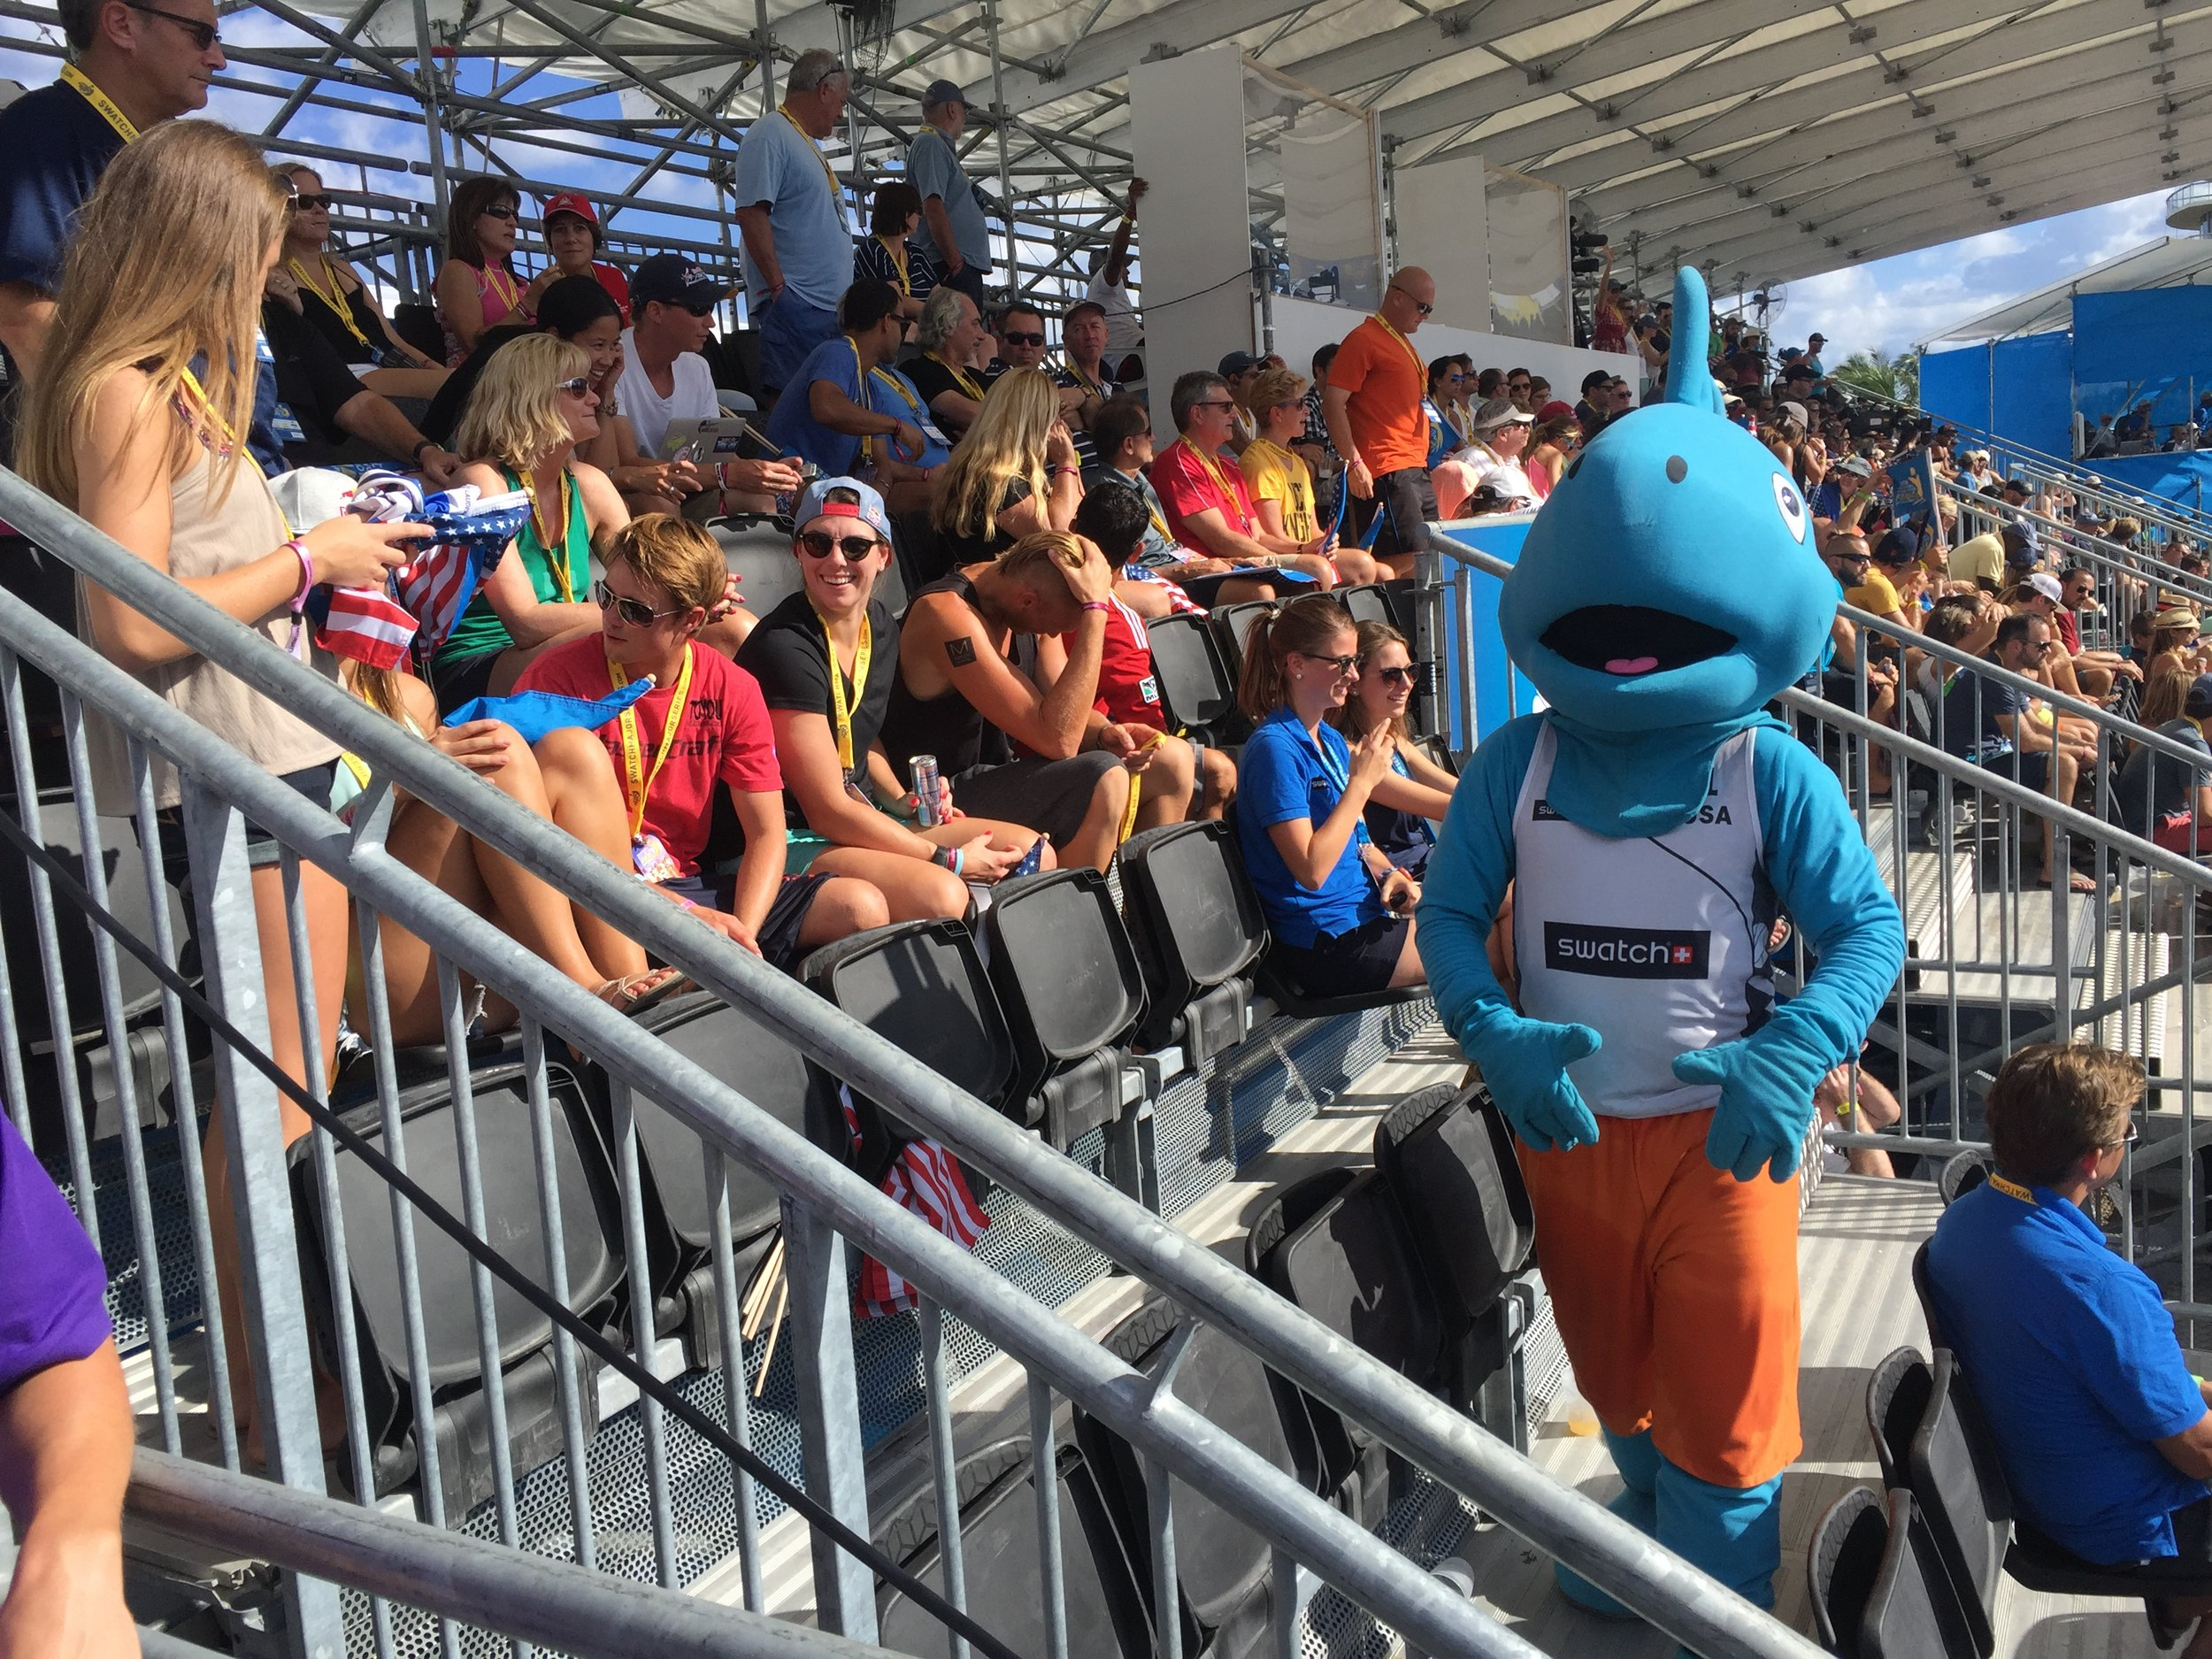 Kudos to Sunny the mascot, working it in 85-degree F weather